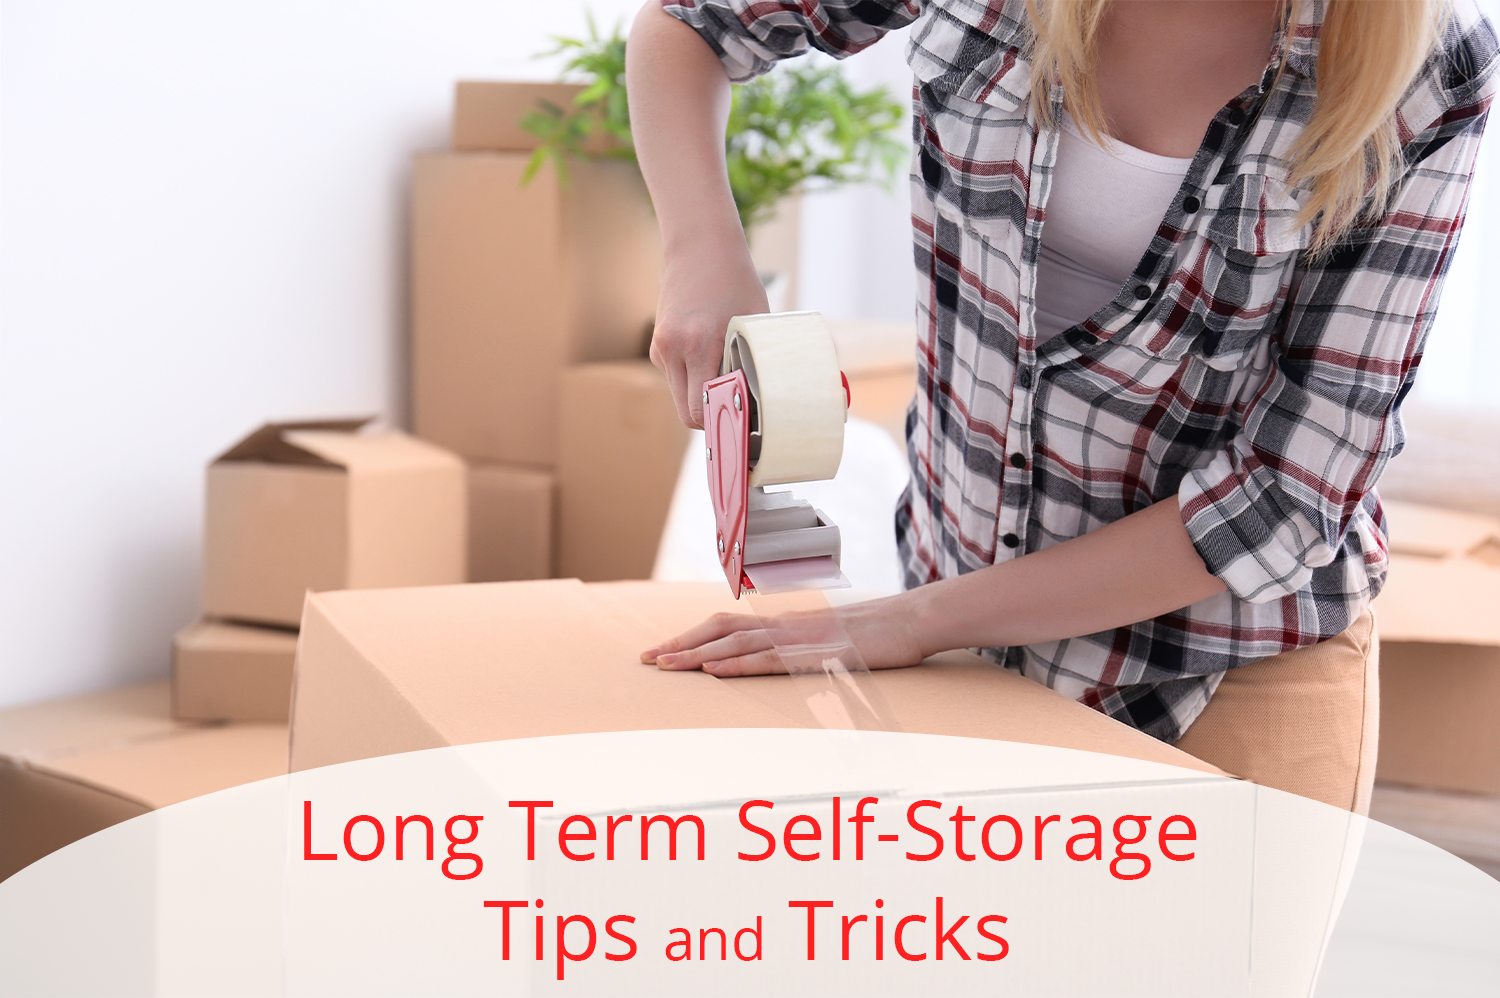 Post Falls woman using our self-storage tips and tricks to pack things away in cardboard box.